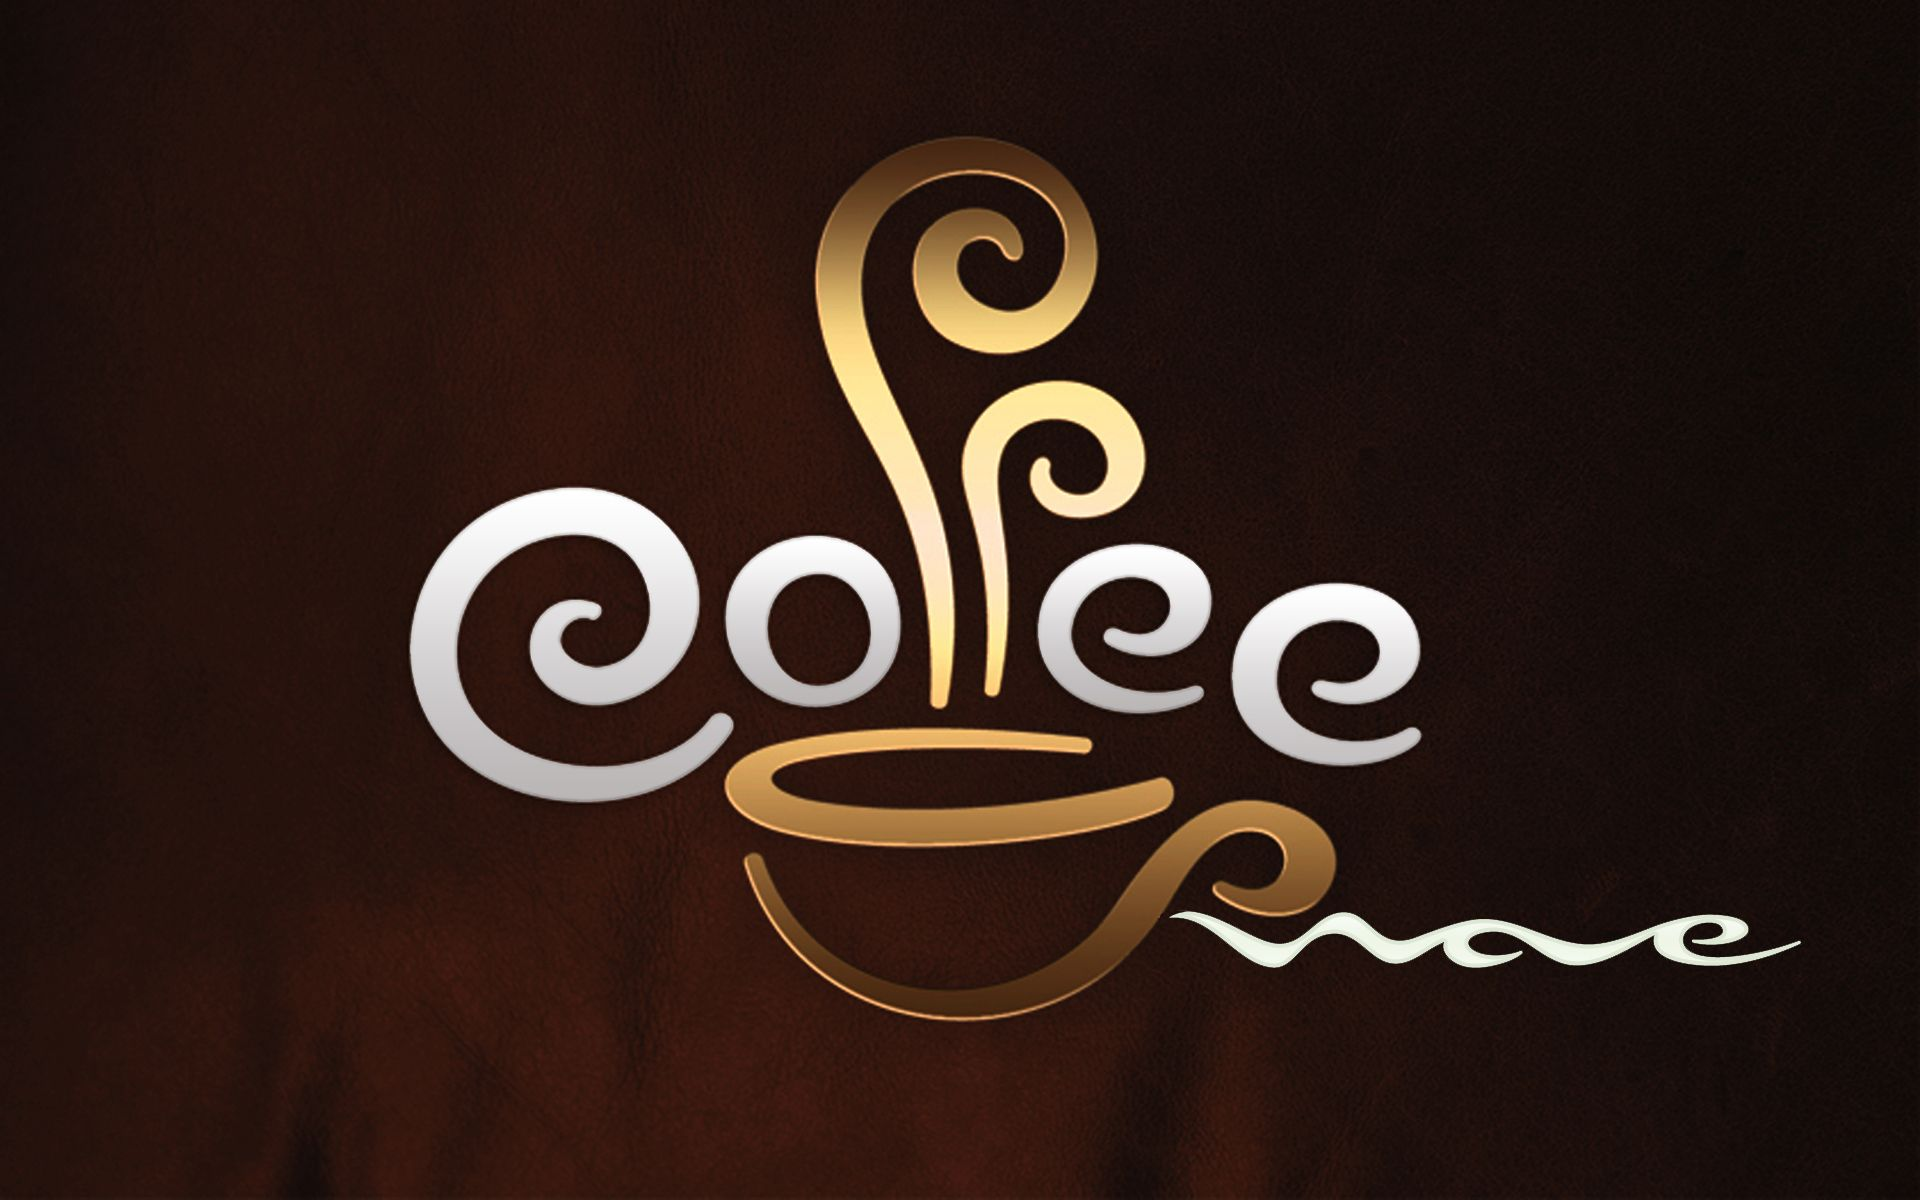 Coffee Wallpaper hh Pinterest Coffee